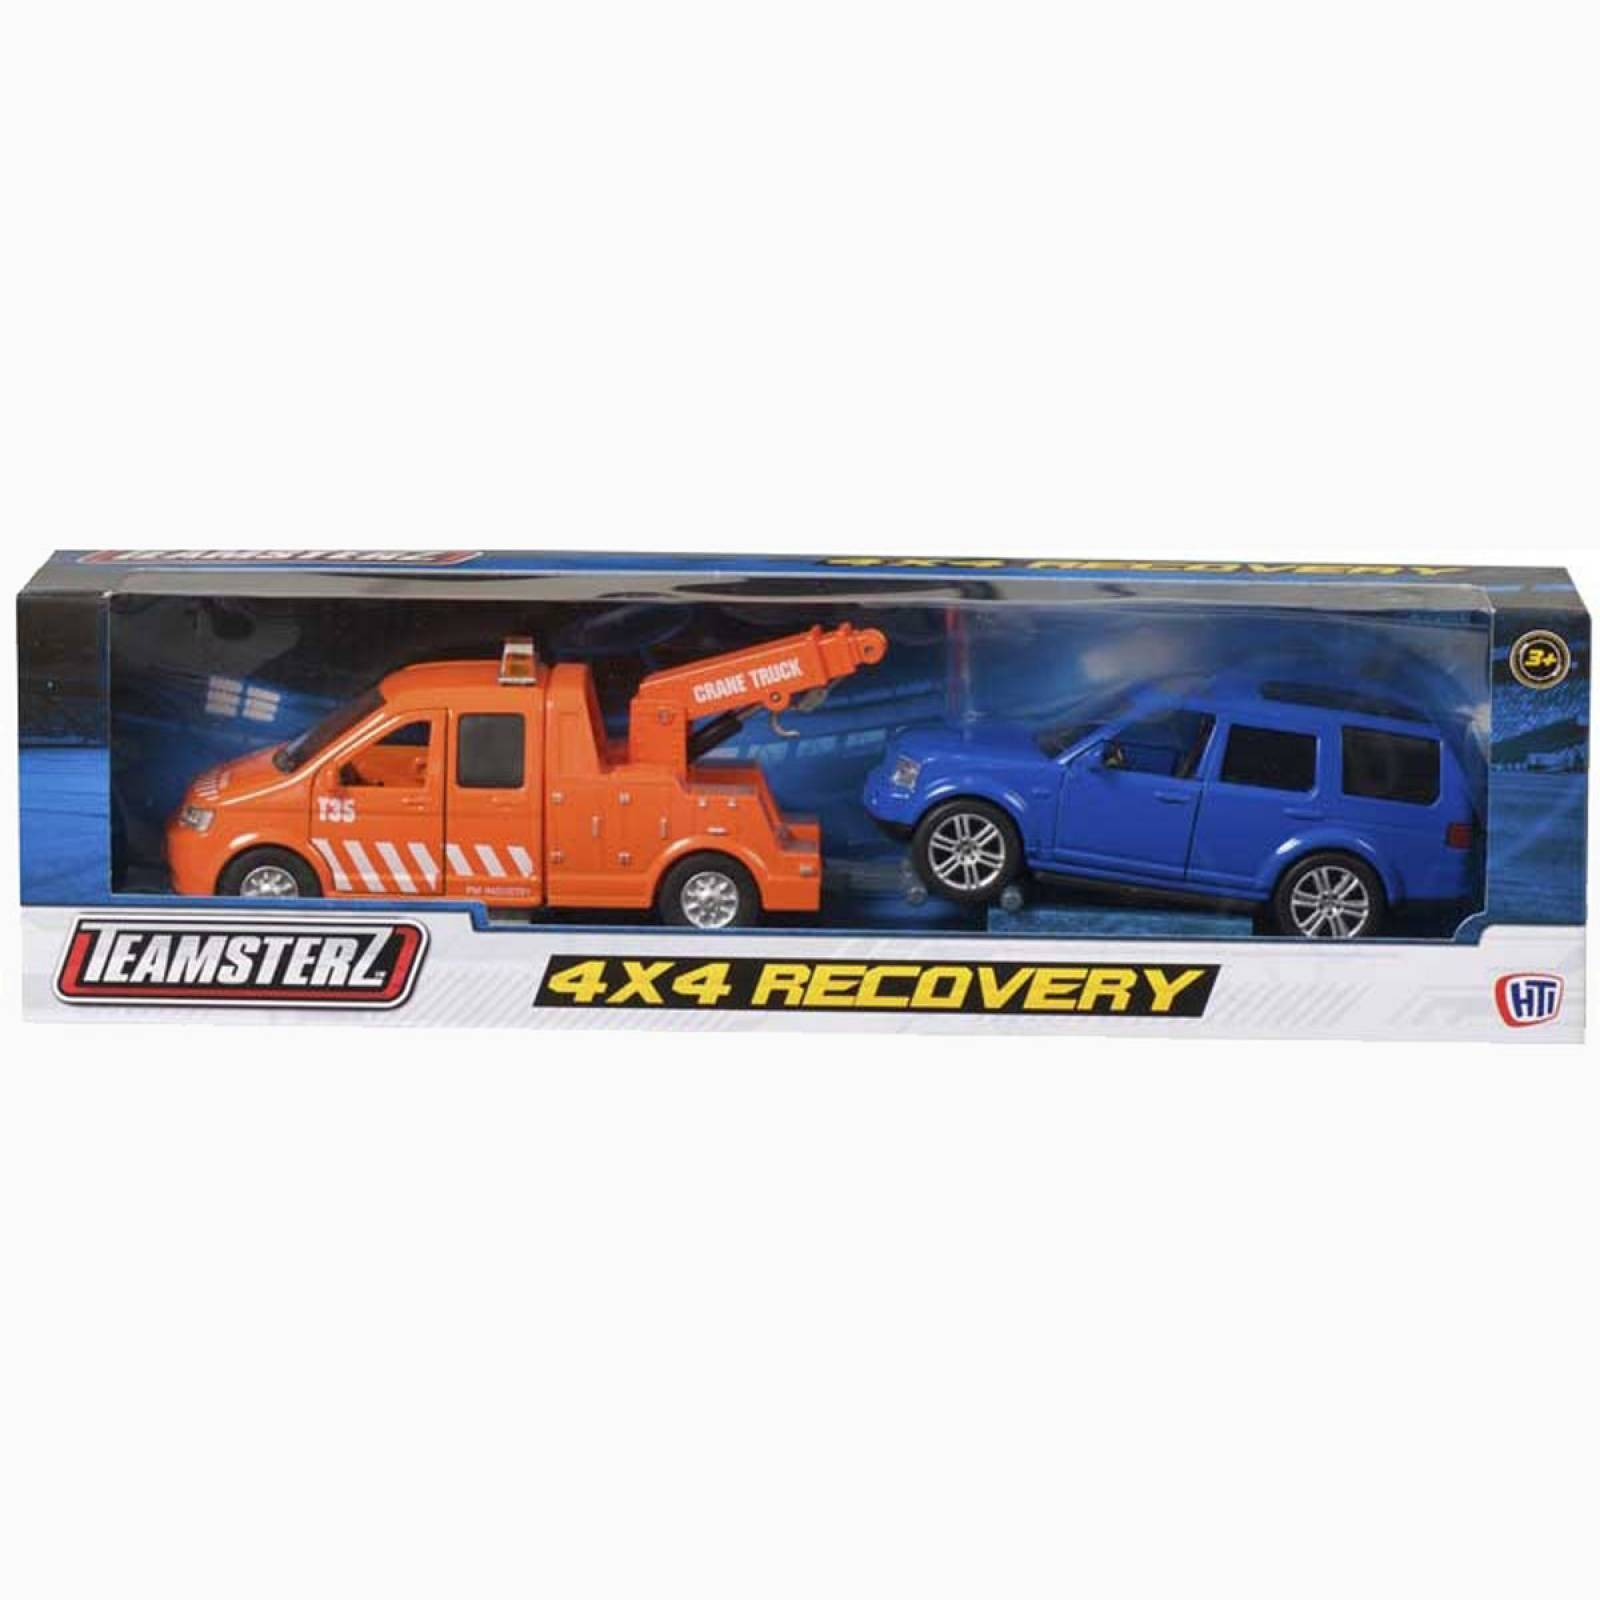 Teamsterz Recovery Tow Truck & Land Rover Diecast Toy Car Set